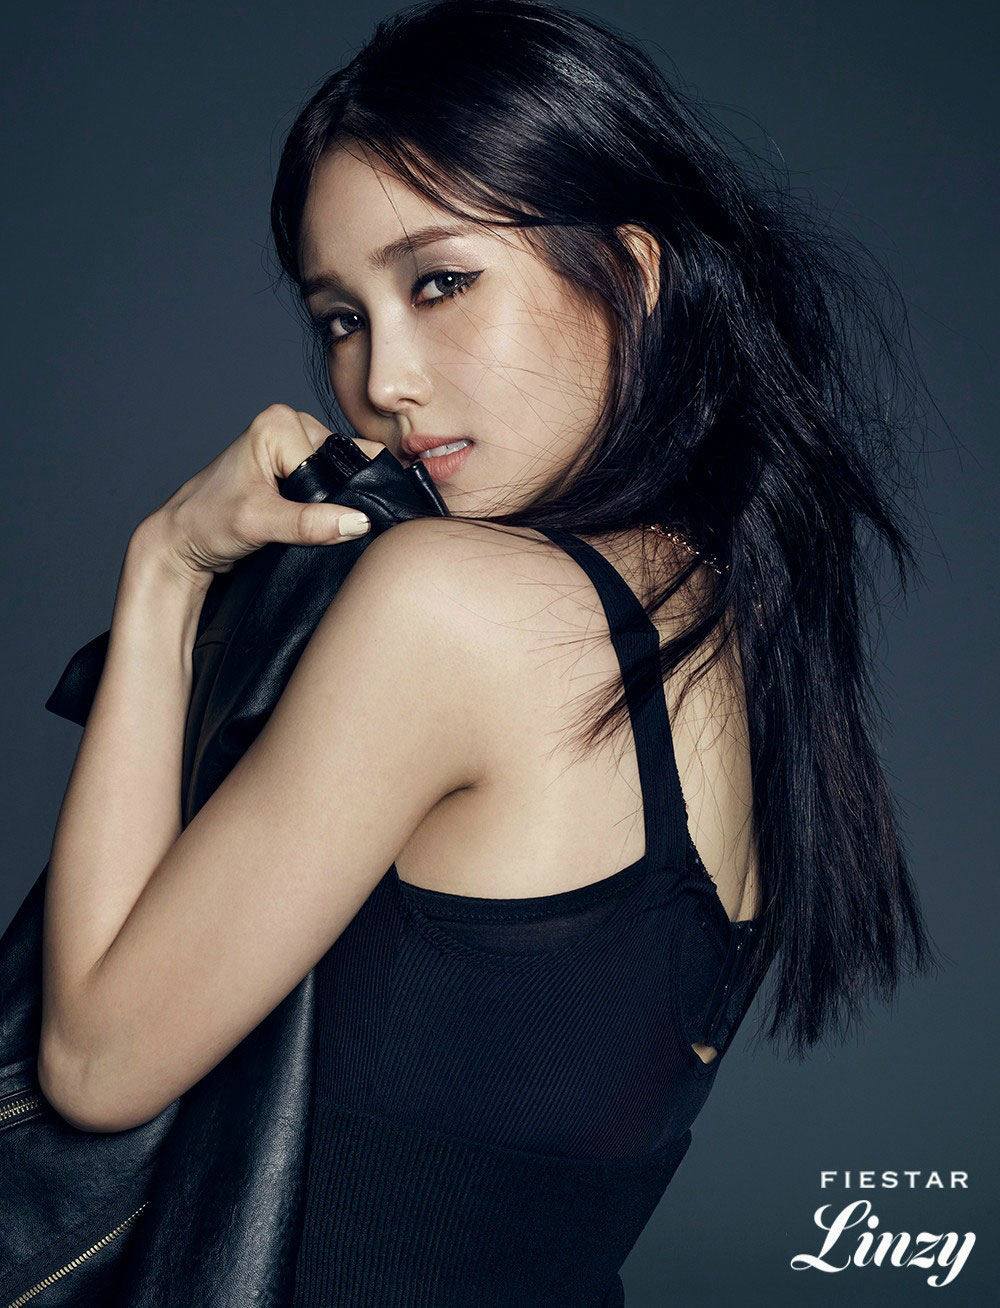 Fiestar Linzy Black Label mini album